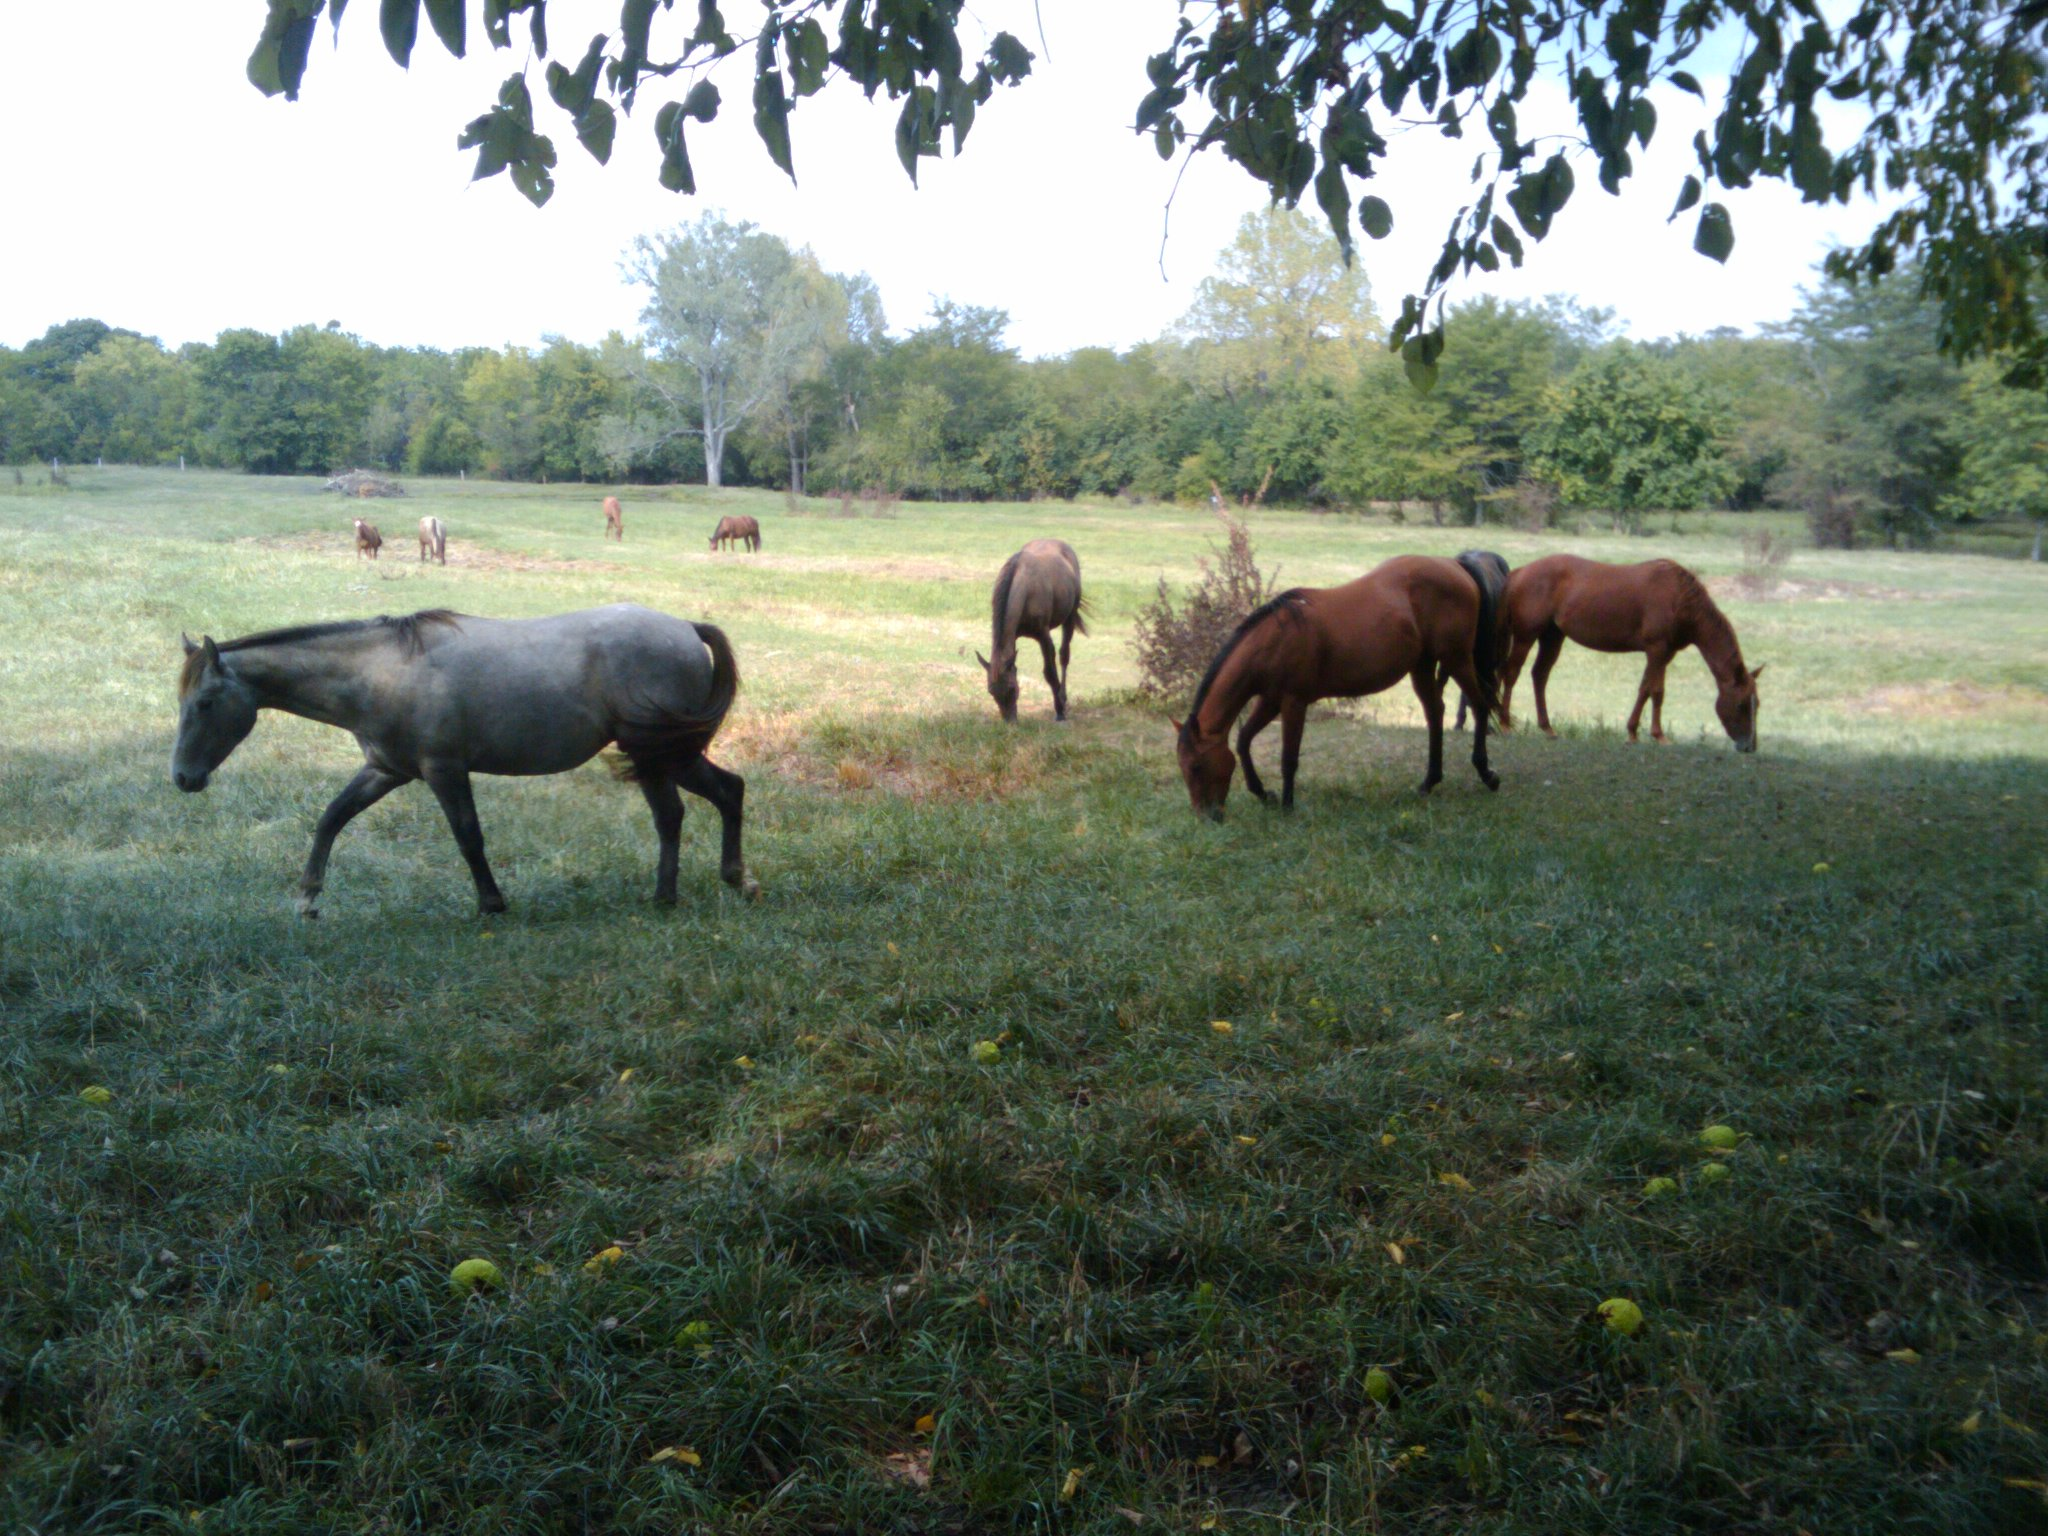 Horses in the Pasture - Kansas